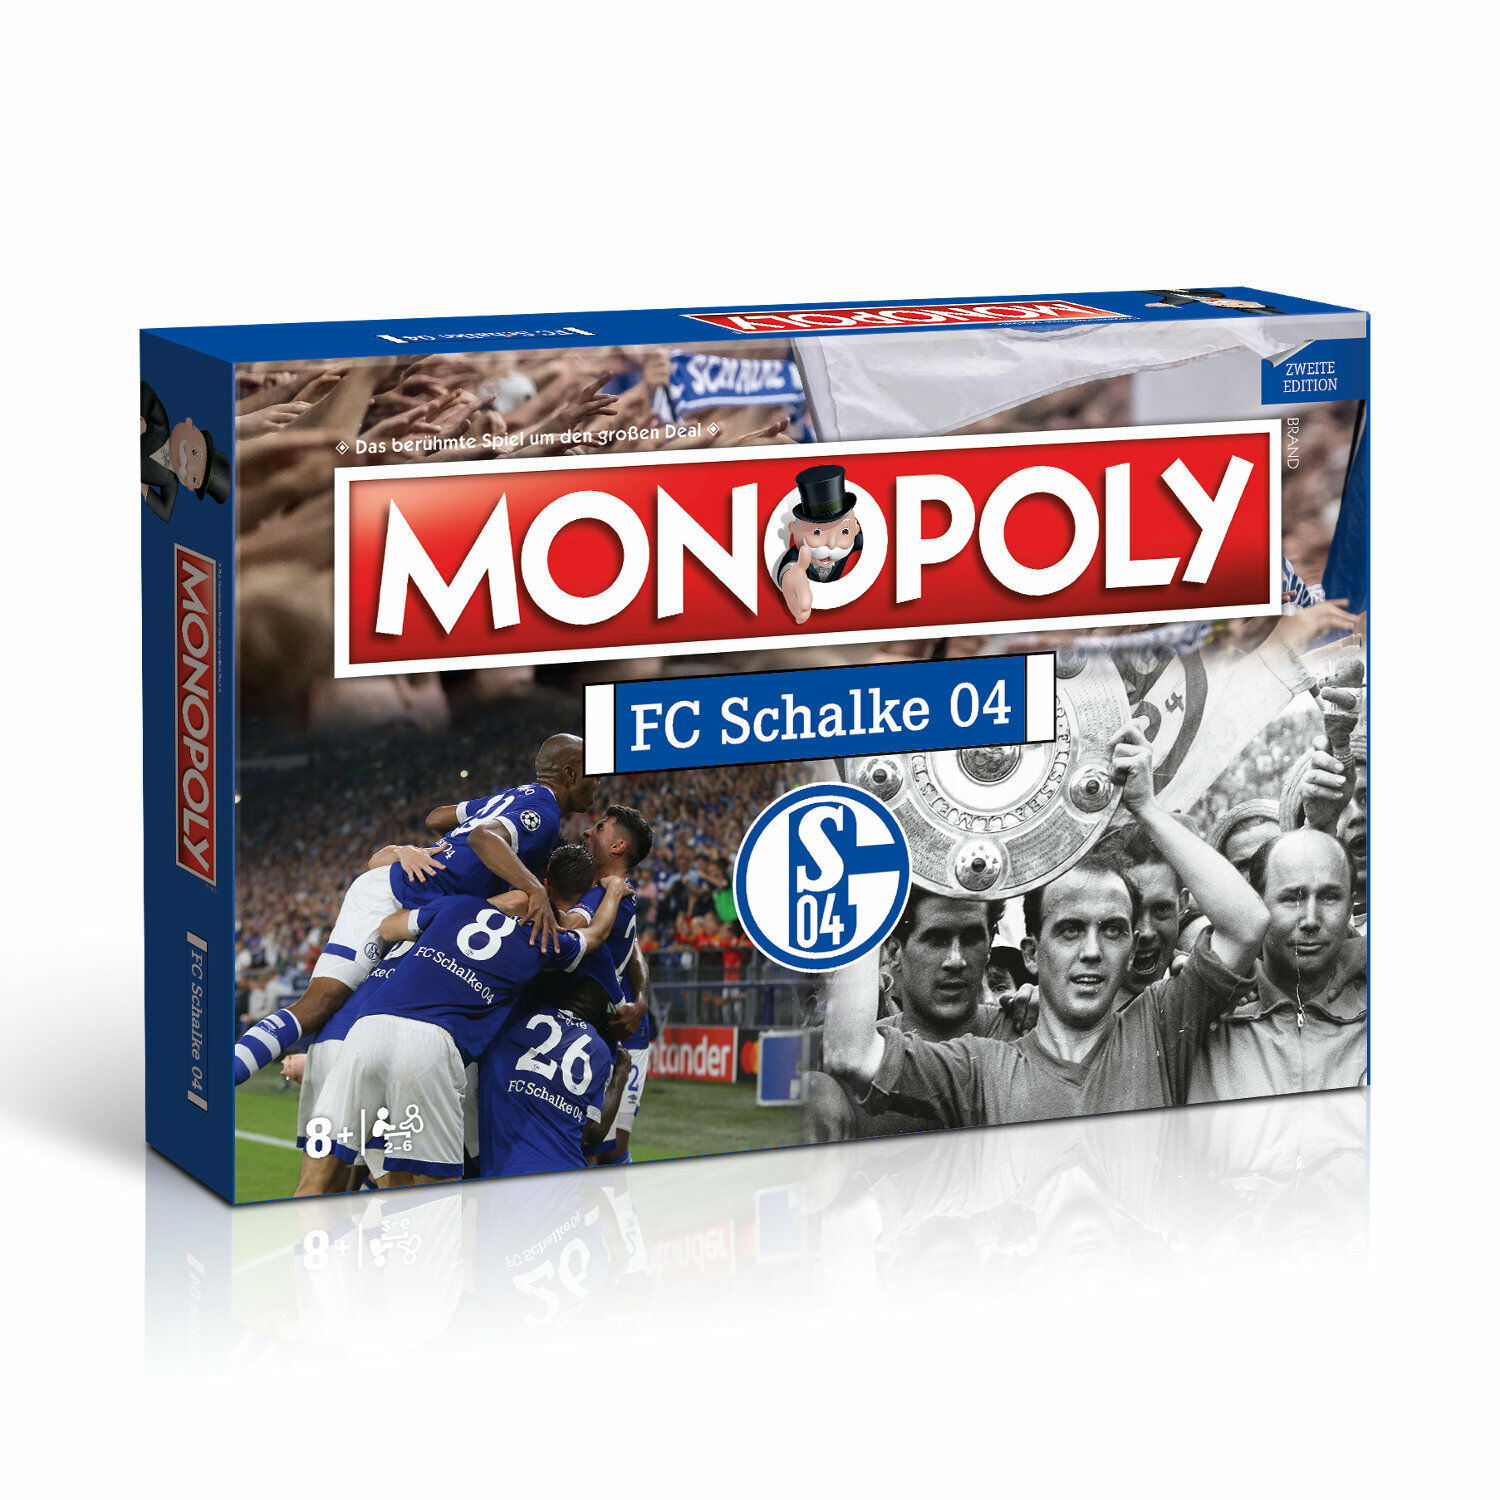 Monopoly FC Schalke 04 s04 Board Game Soccer Game Company Game